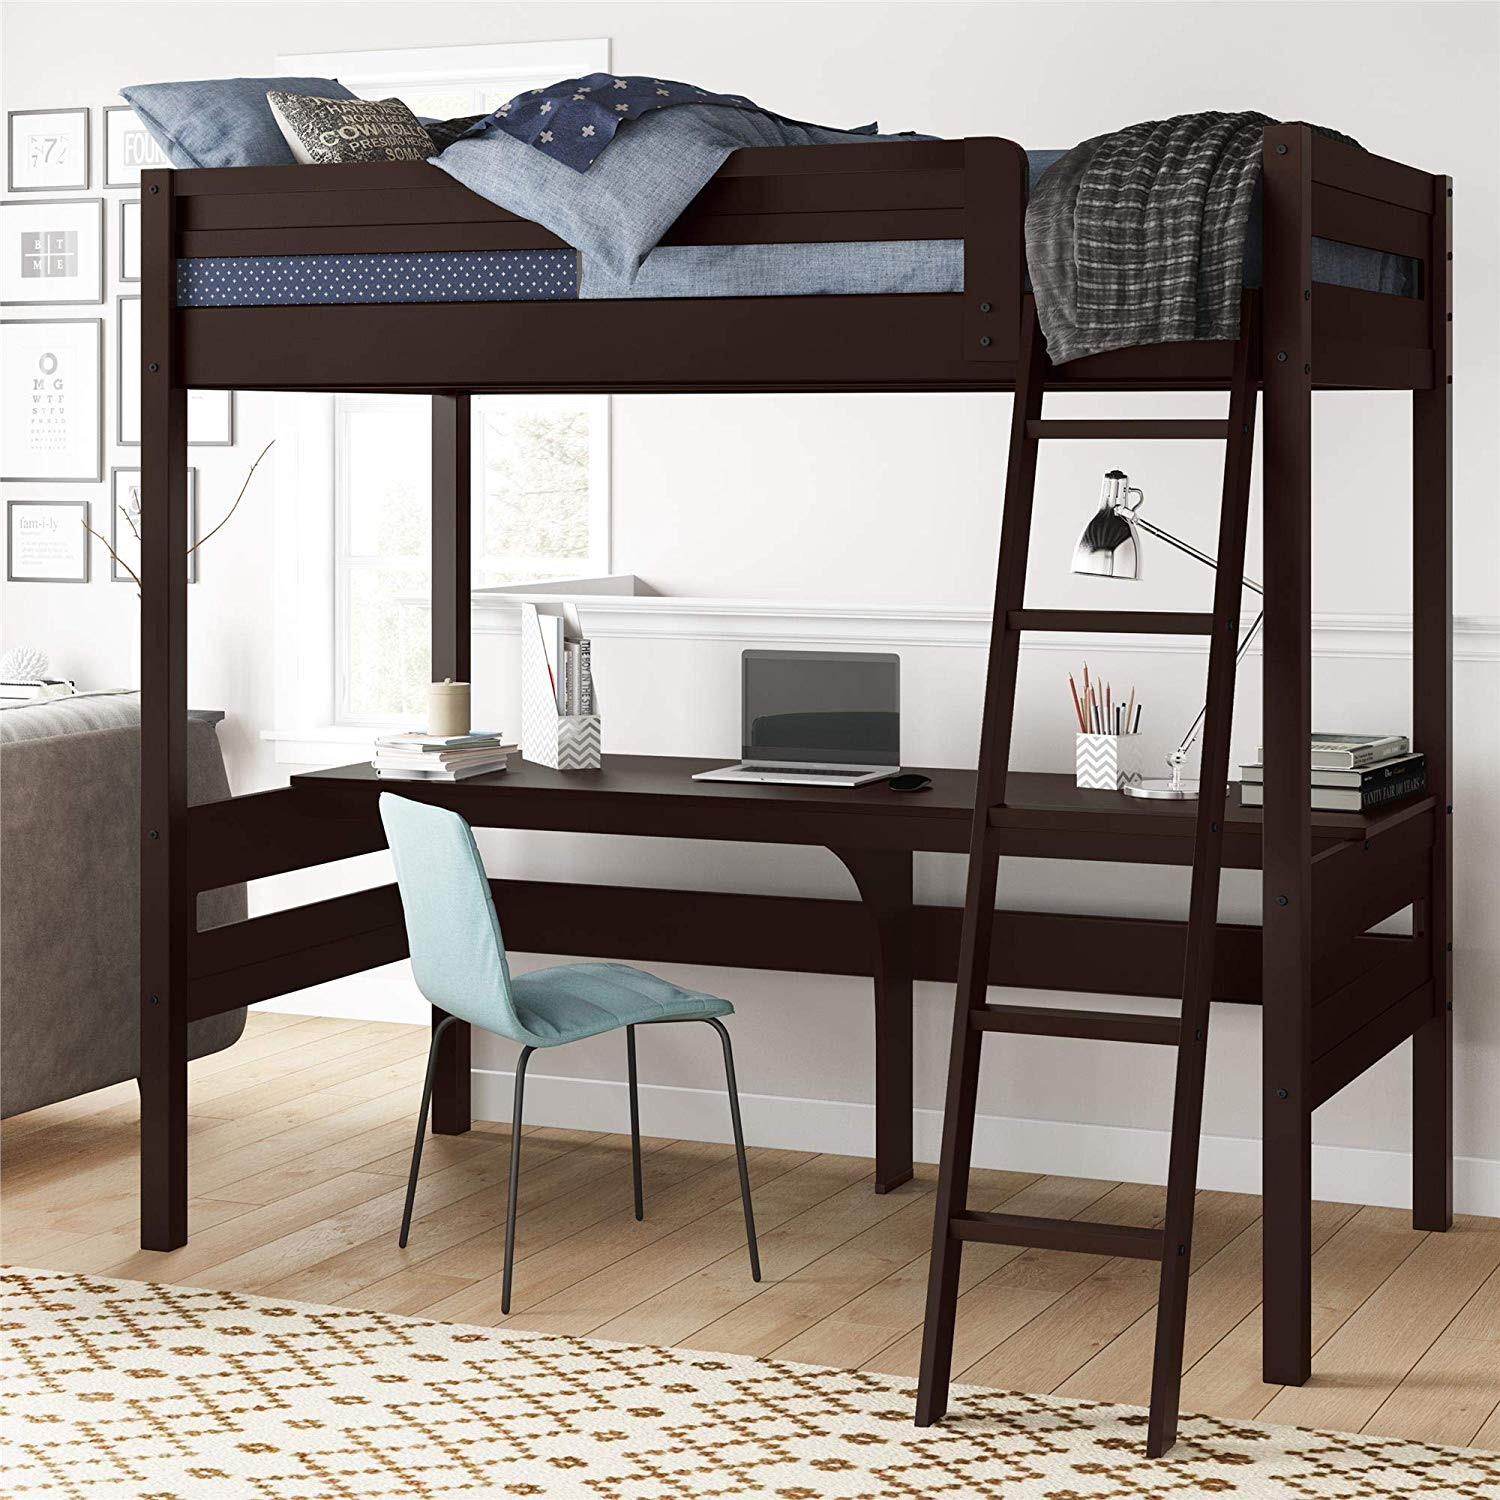 Harlan Wood Loft bed, Espresso or White